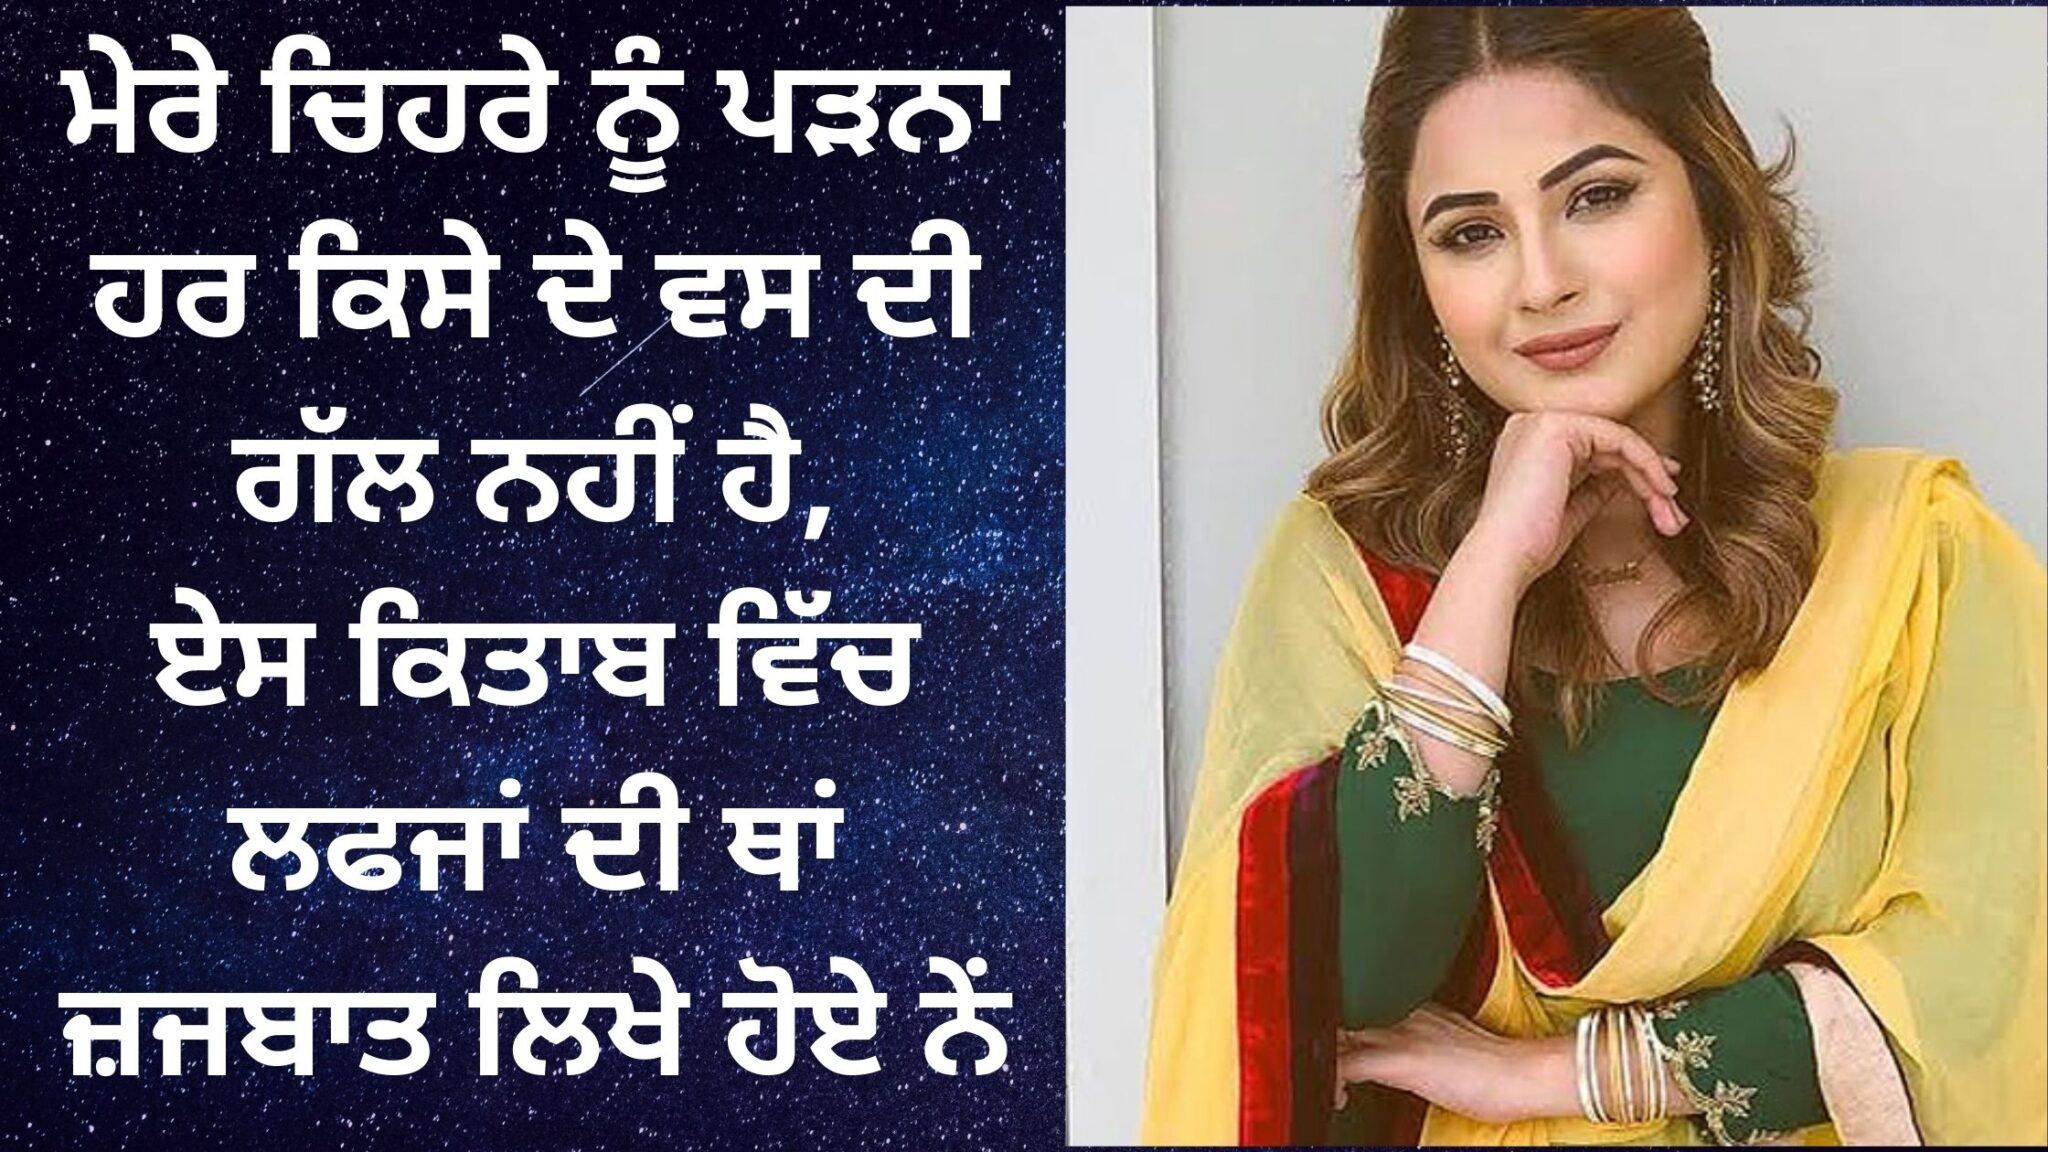 Punjabi quotes on love